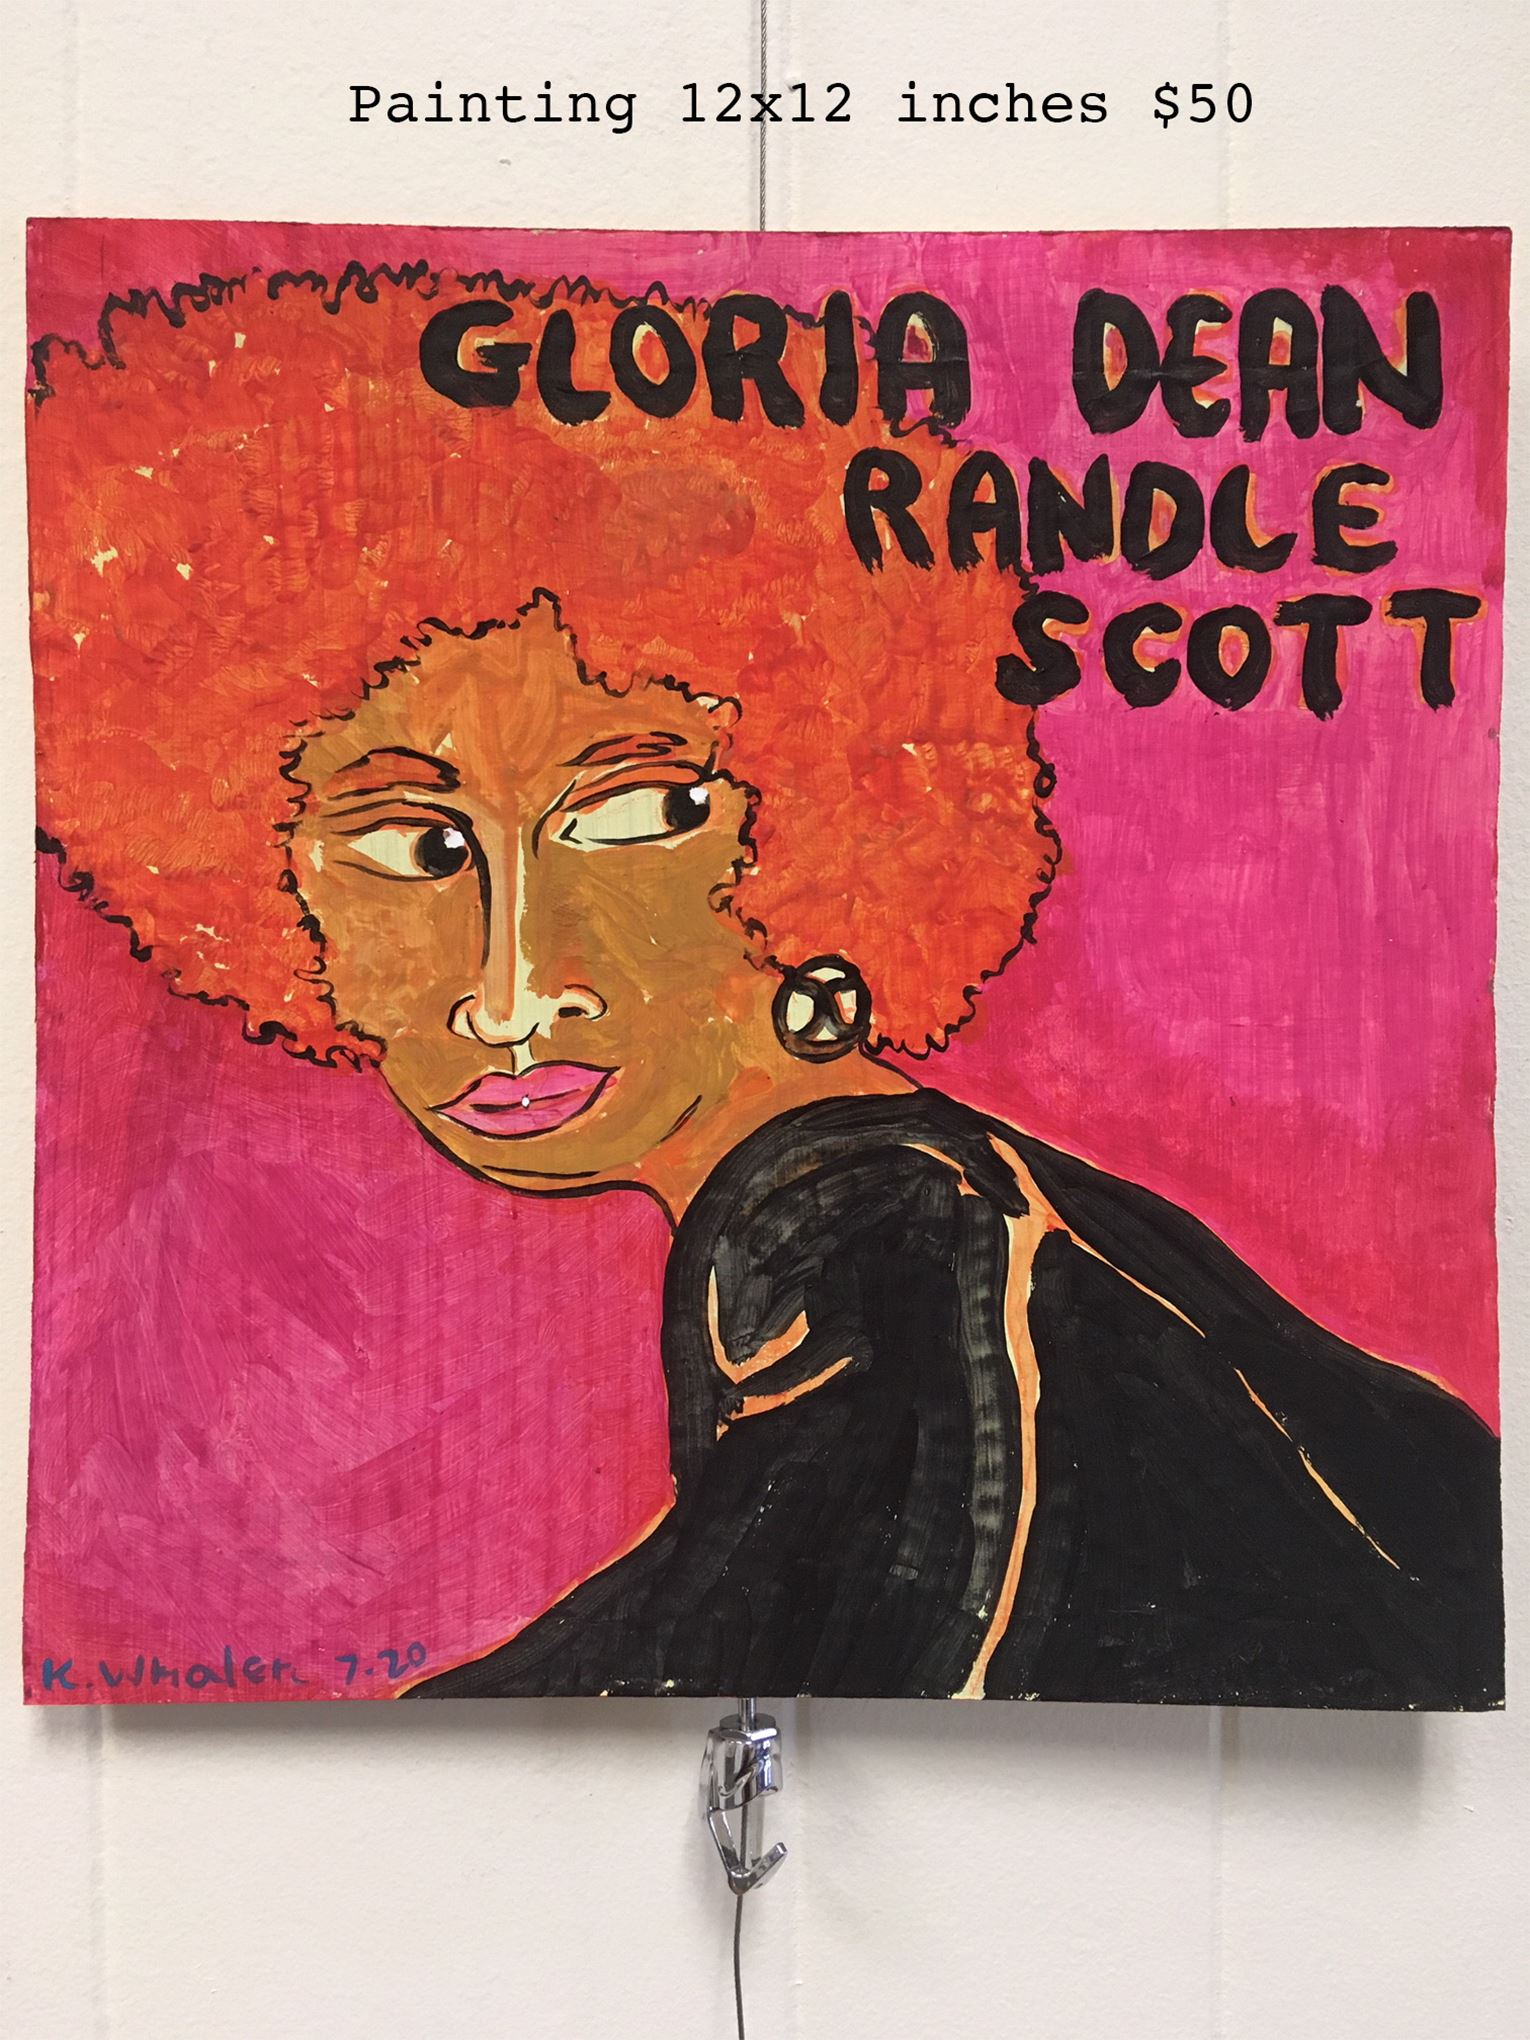 01 - Gloria_Dean_Randle_Scott_Painting